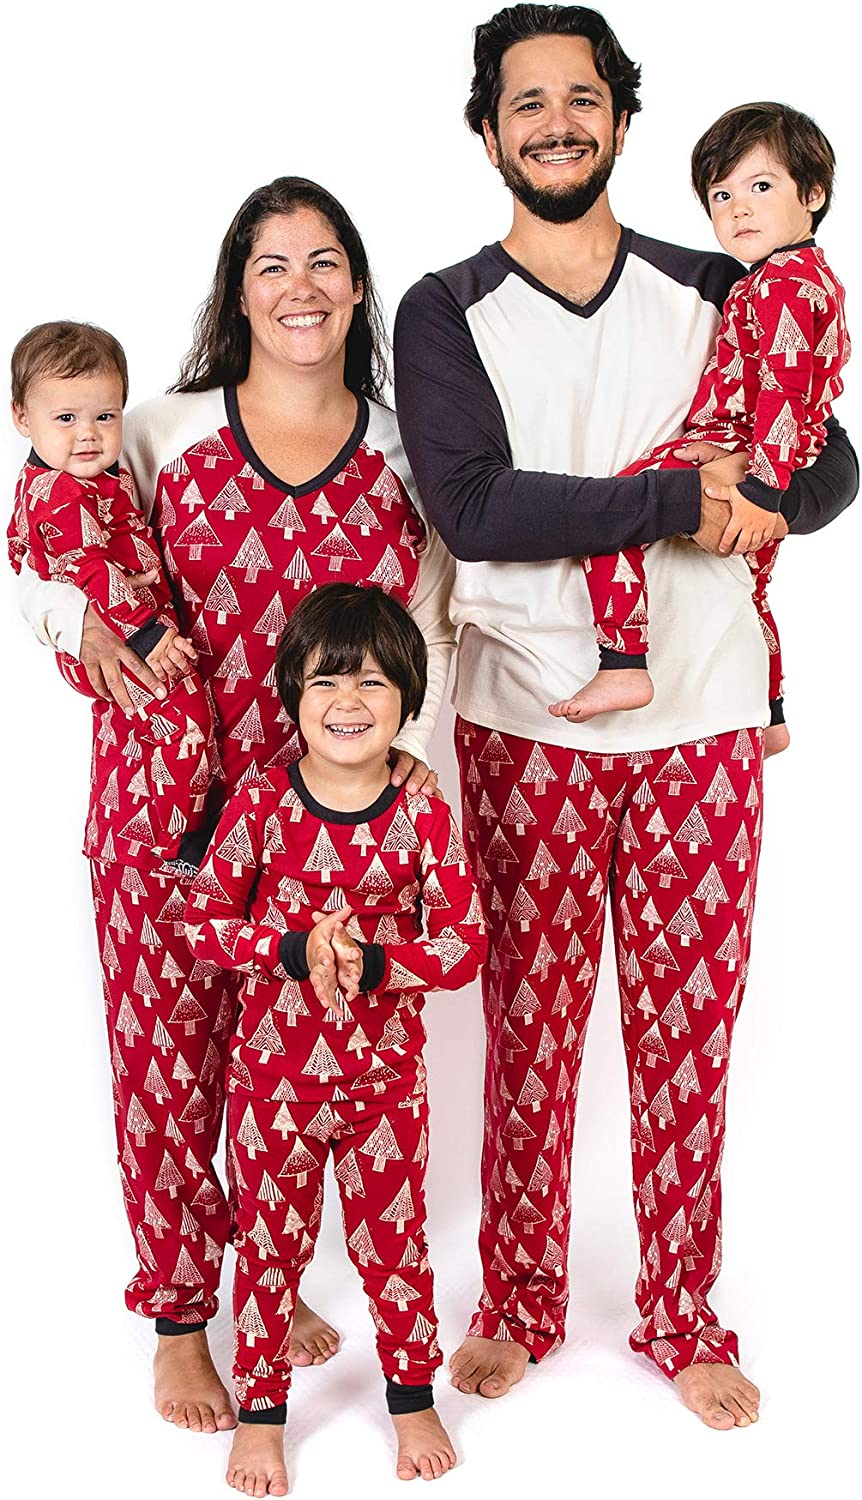 Burt's Bees Baby Family Jammies, Holiday Matching Pajamas, 100% Organic Cotton PJs, Festive Forest, Womens Small